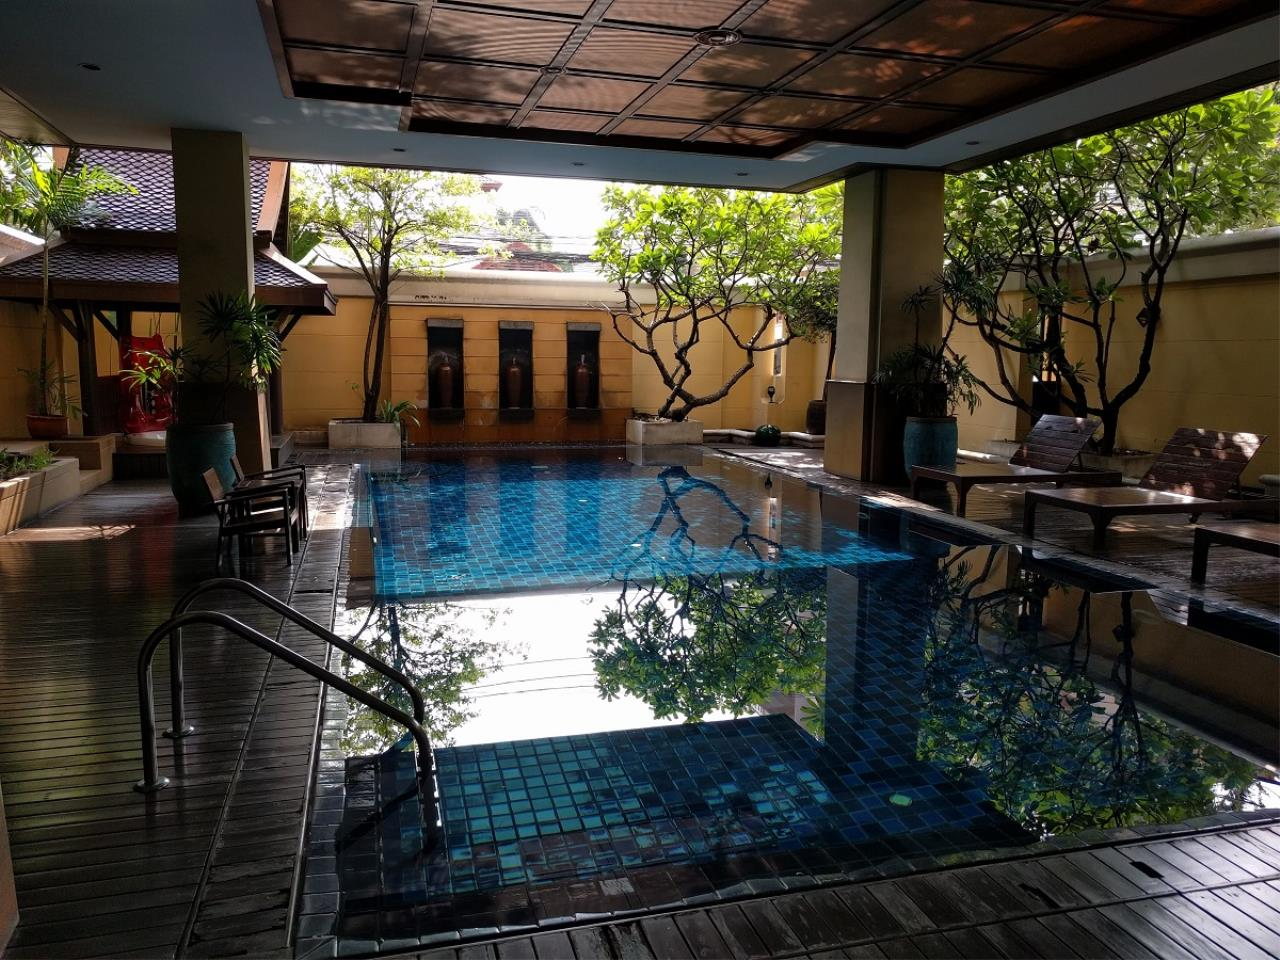 RE/MAX CondoDee Agency's Thai Elegance Luxury Condominium - Entire Building for Sale 30